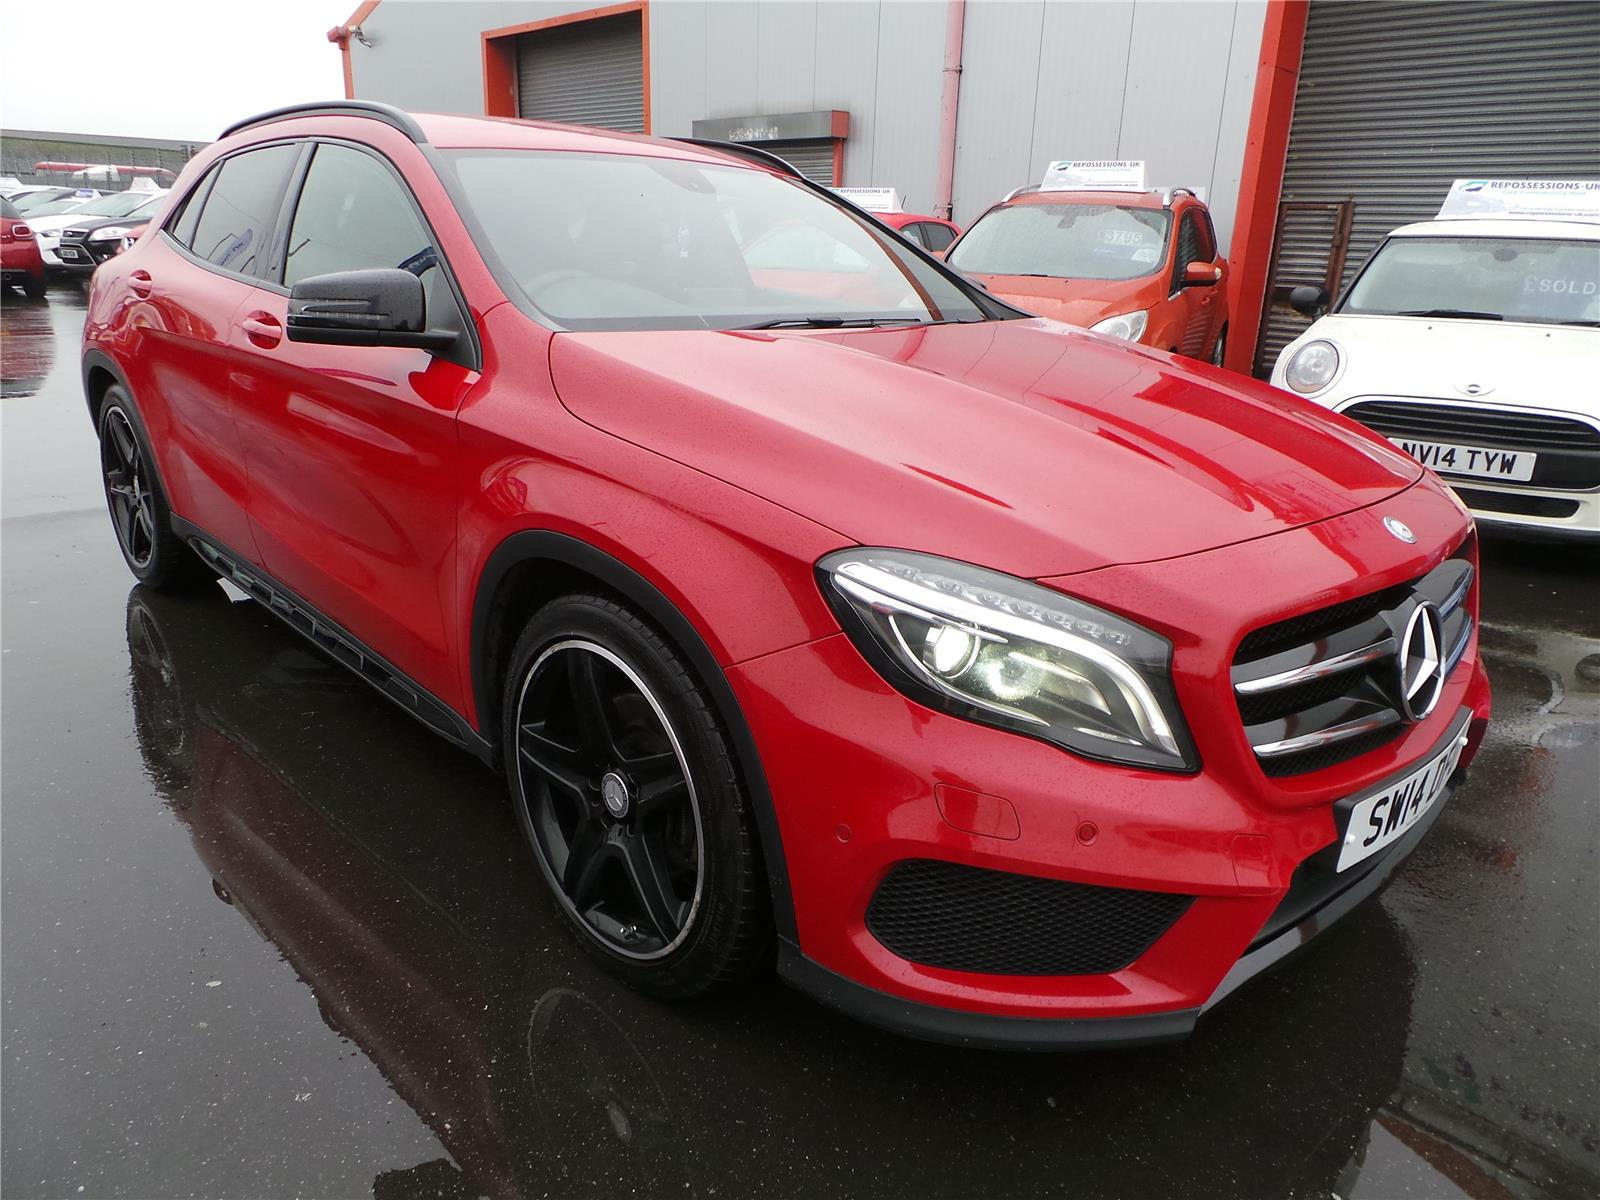 2014 MERCEDES GLA-CLASS GLA220 CDI 4MATIC AMG LINE PRE 2143 DIESEL AUTOMATIC 7 Speed 5 DOOR ESTATE